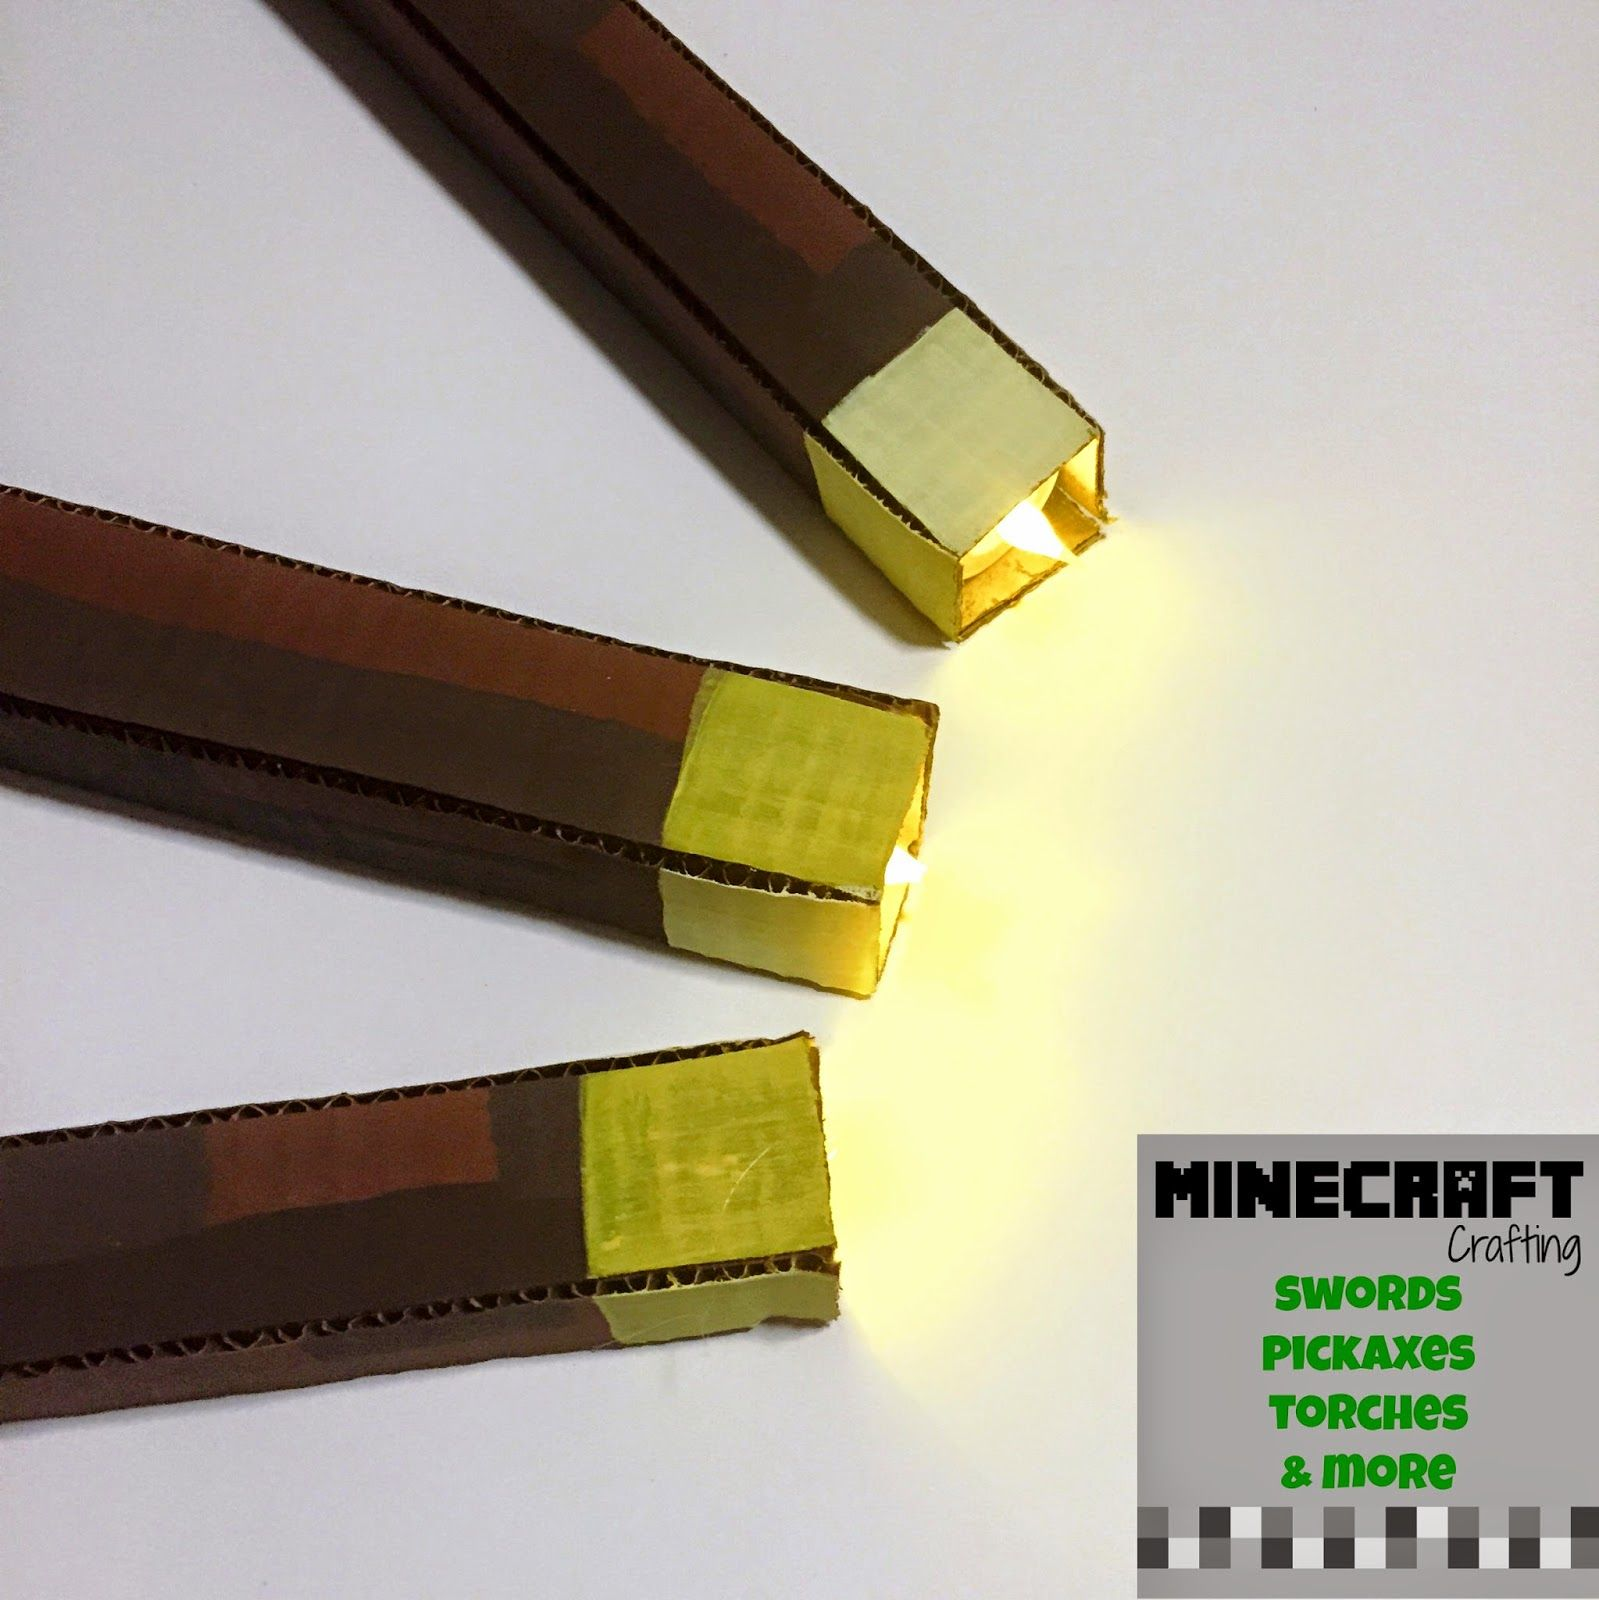 Full Diy Instructions To Make Cardboard Torches Twitchetts Minecraft Crafting